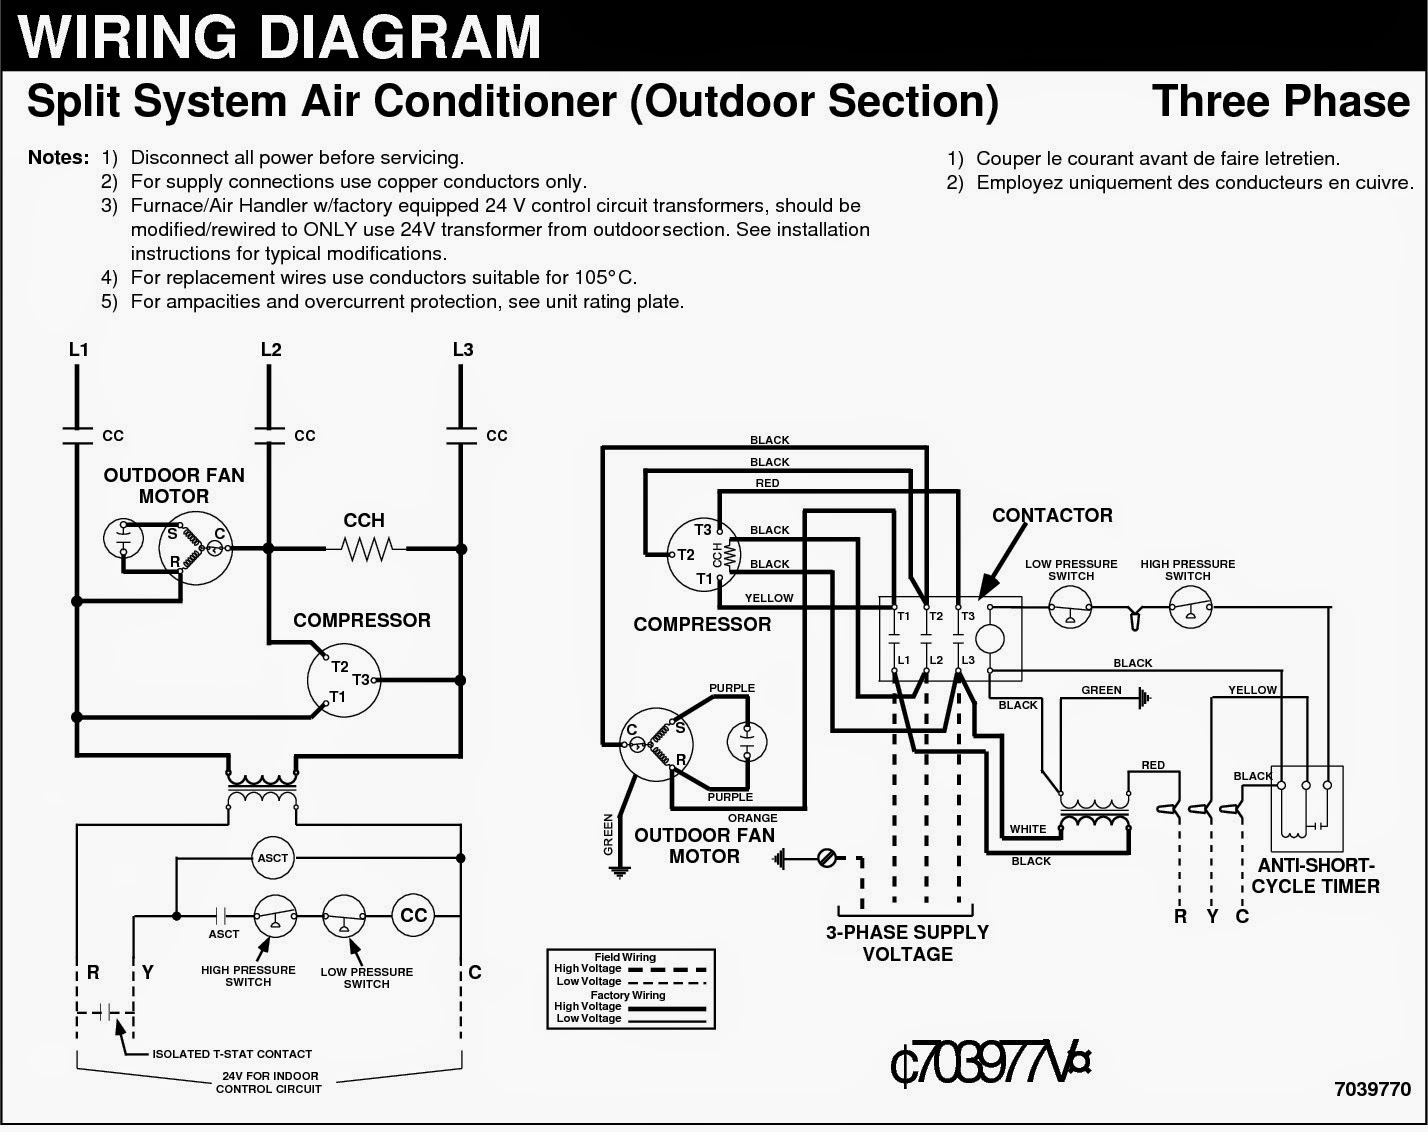 3+phase electrical wiring diagrams for air conditioning systems part two Schematic Circuit Diagram at creativeand.co